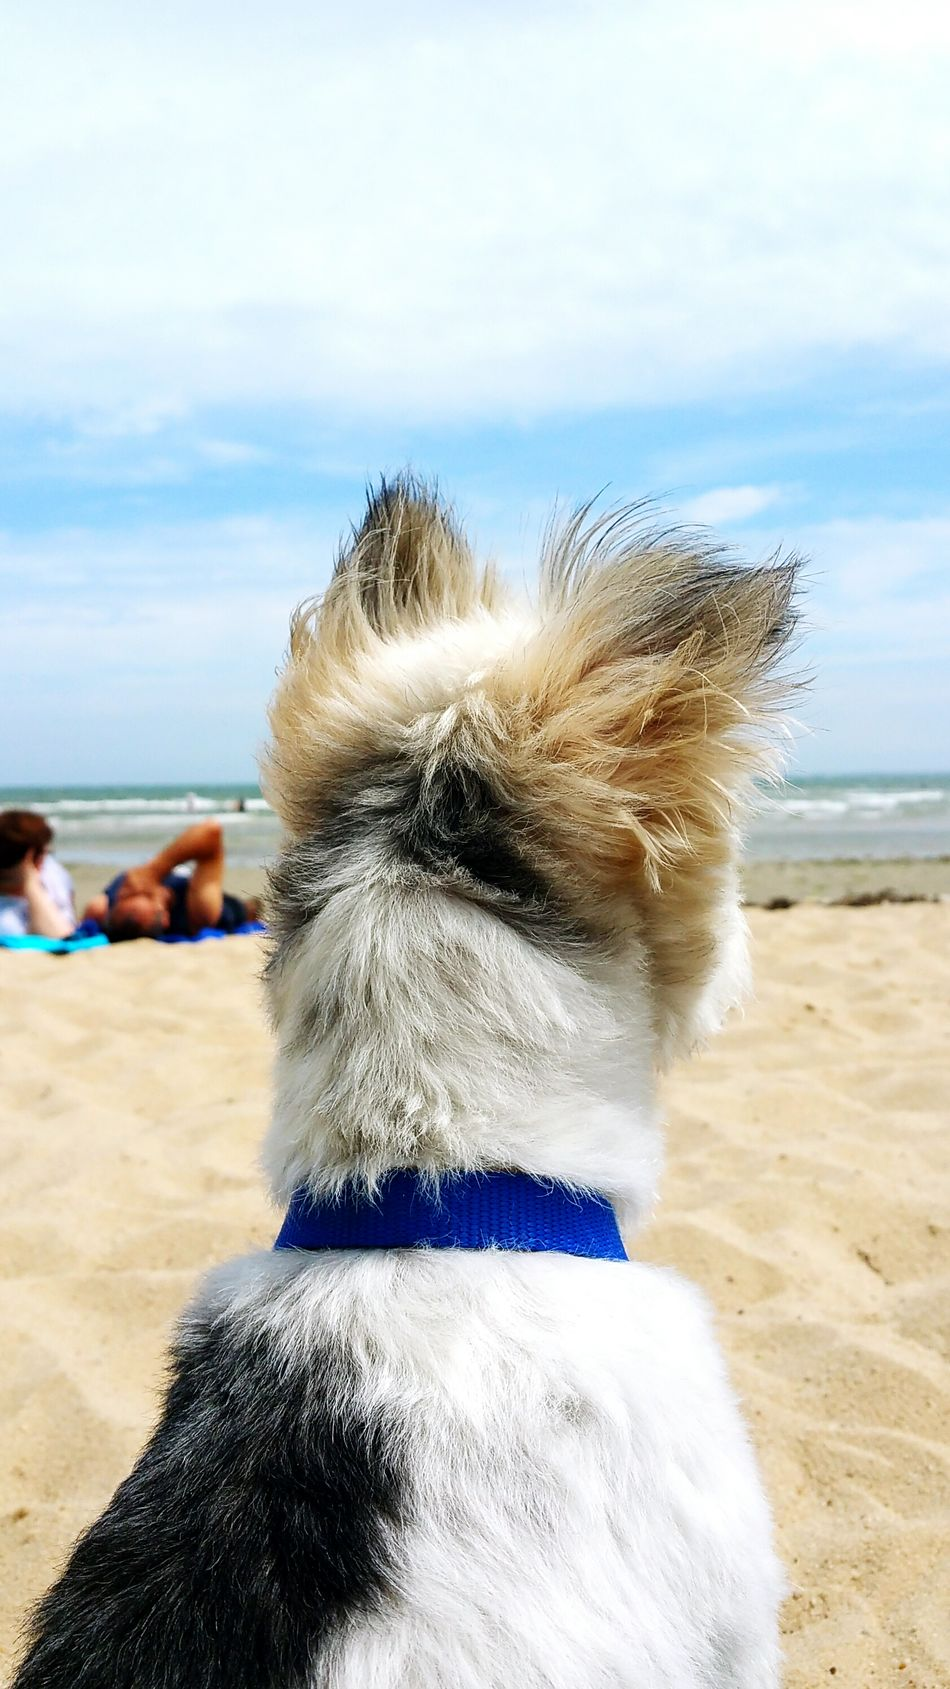 So this is the beach ... sun bathing timeBeach Day For The First Time Happy Puppy